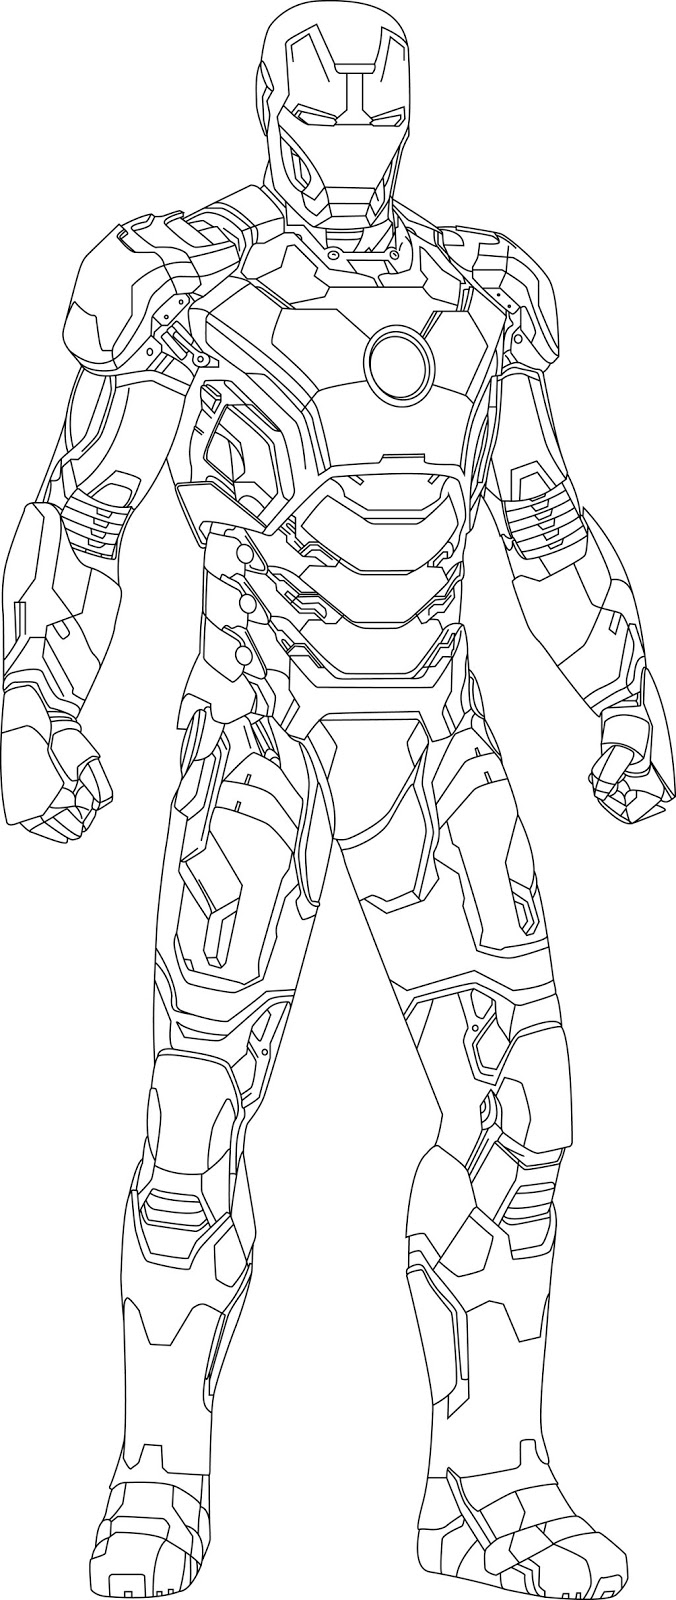 ironman colouring free printable iron man coloring pages for kids colouring ironman 1 3